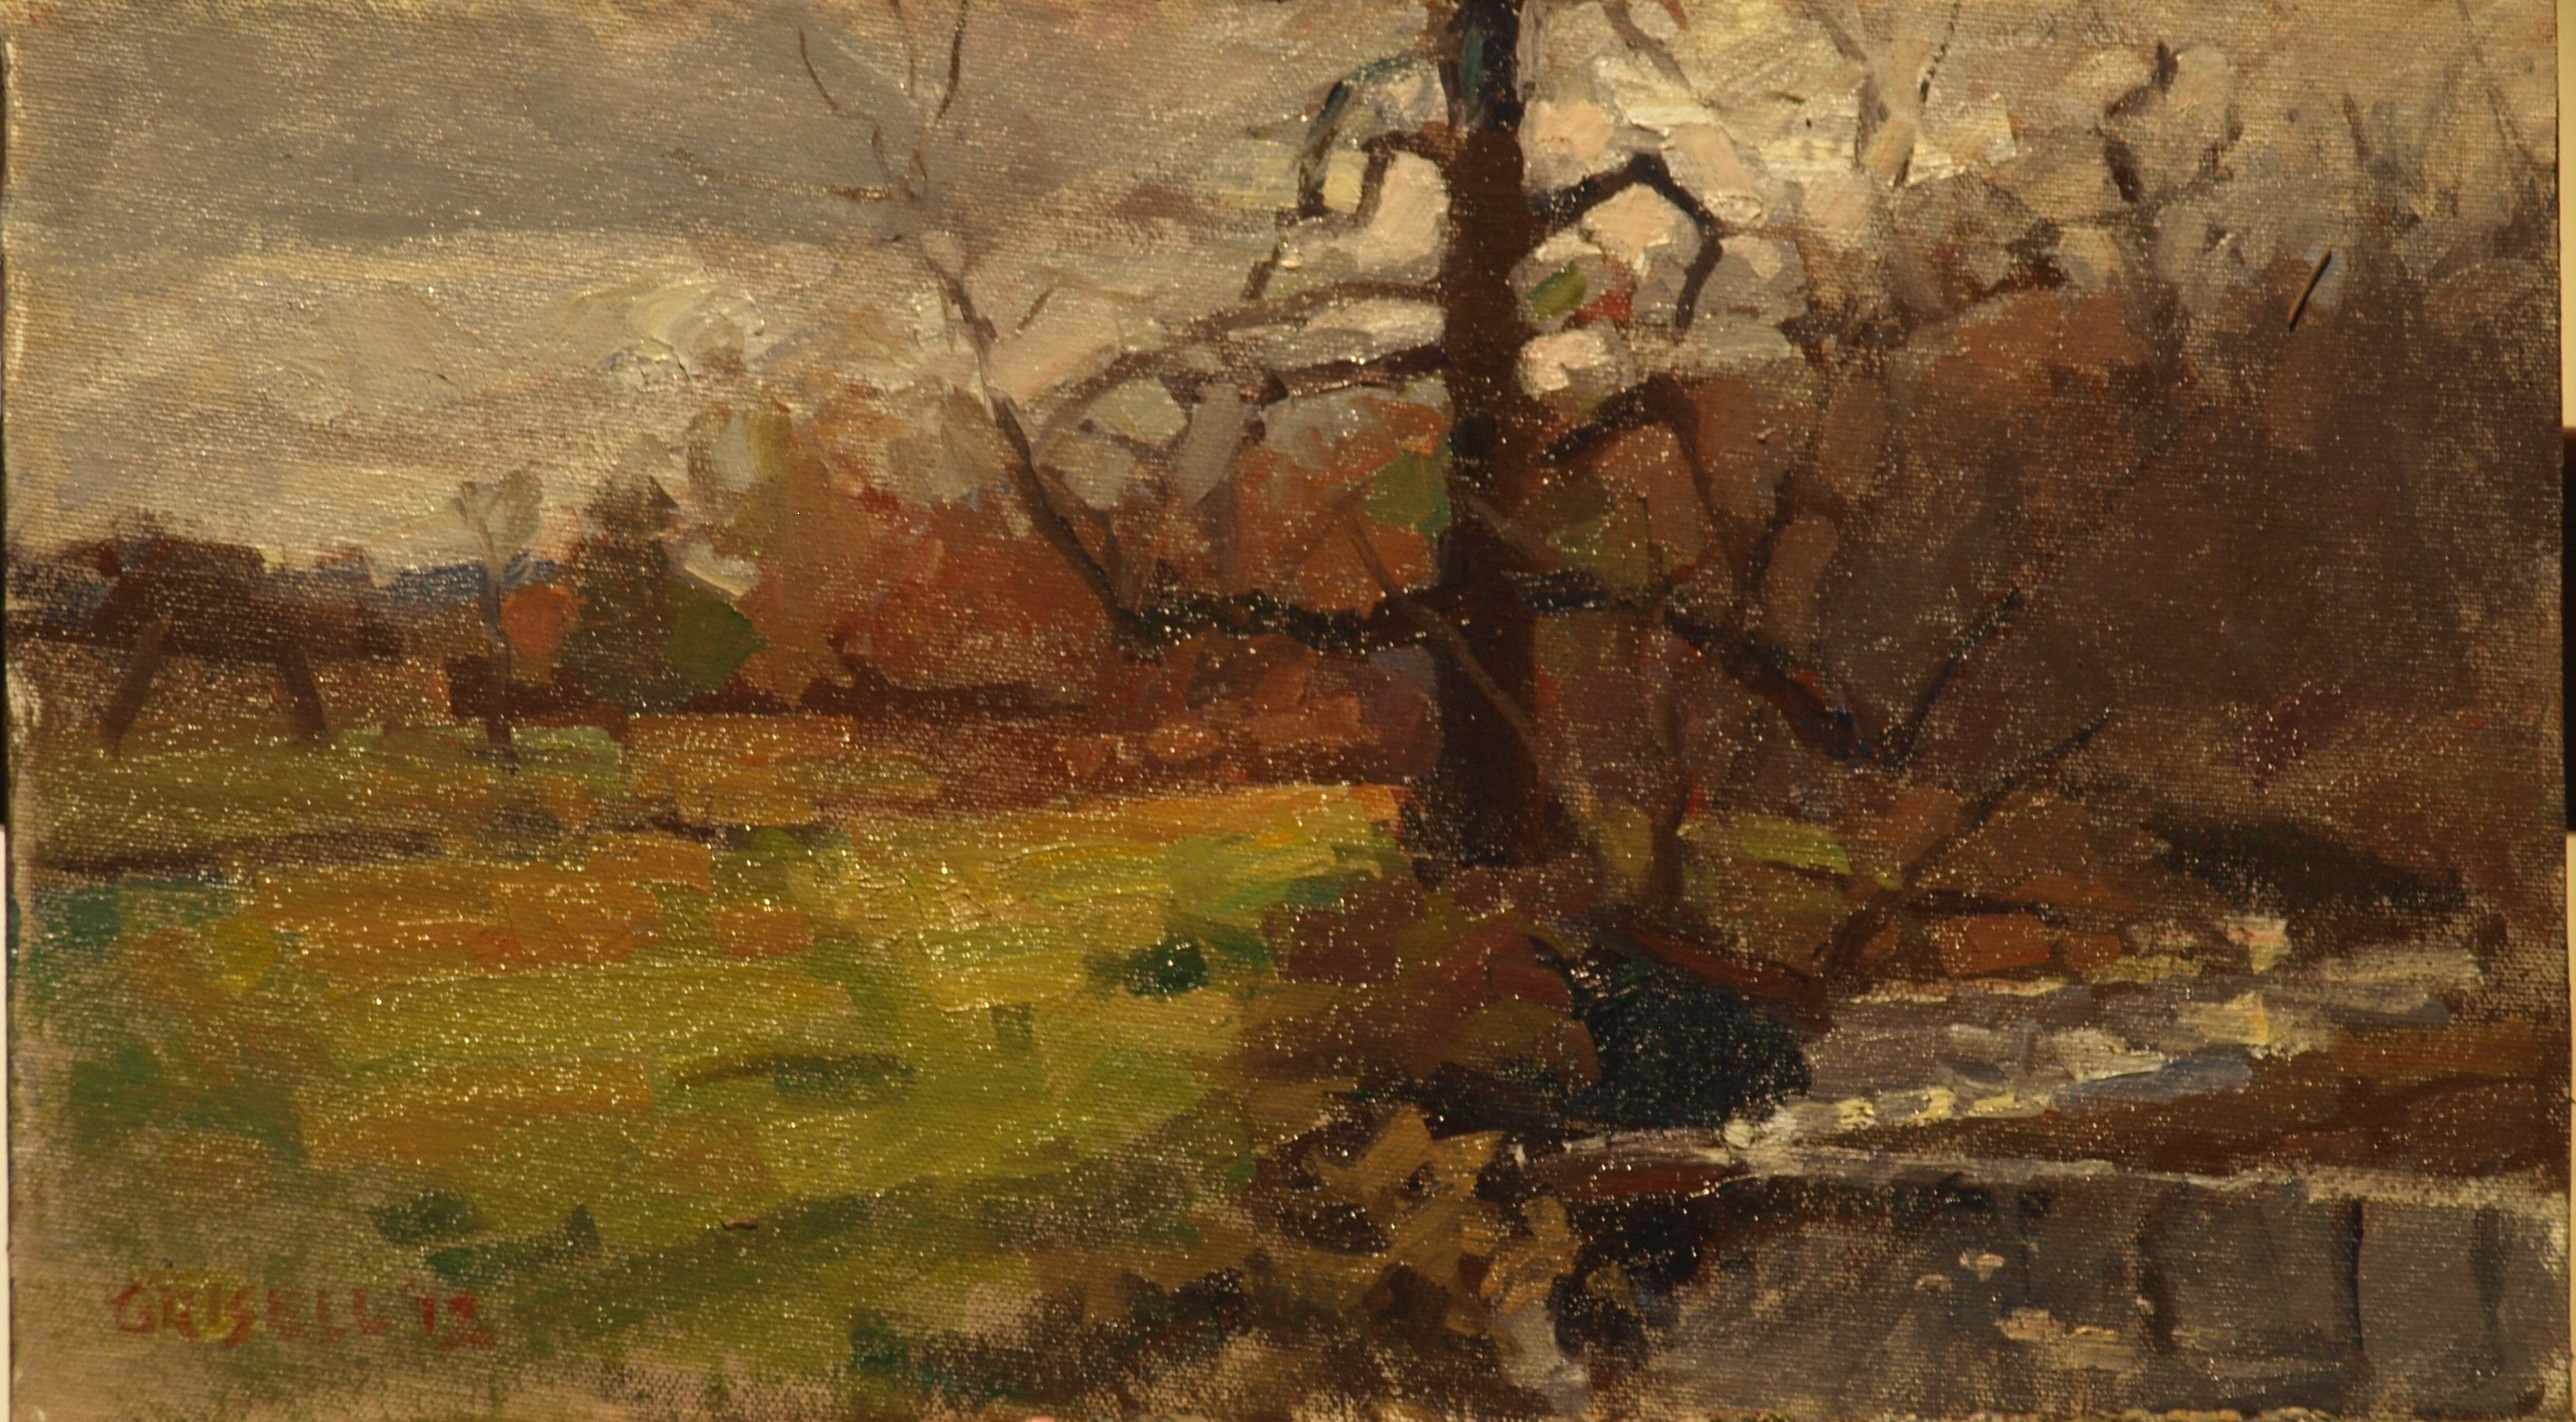 Gnarled Tree, Oil on Canvas on Panel, 9 x 16 Inches, by Susan Grisell, $250